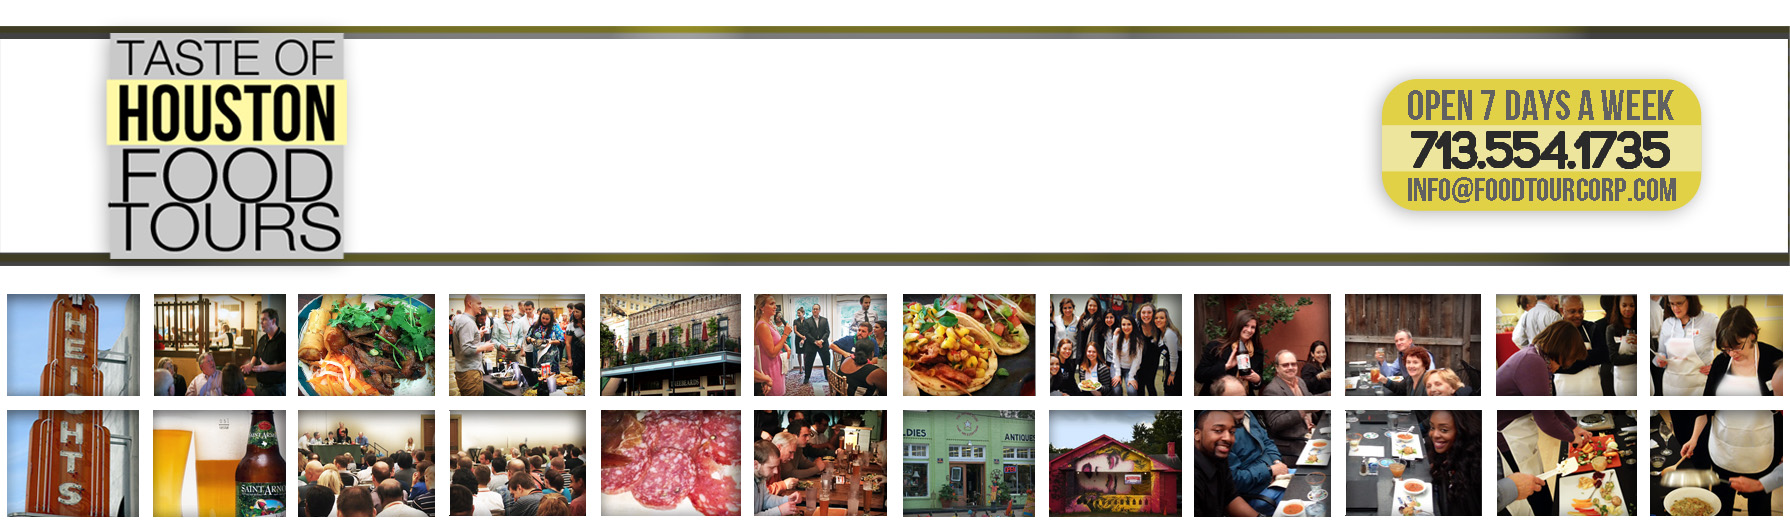 Houston Food Tours header